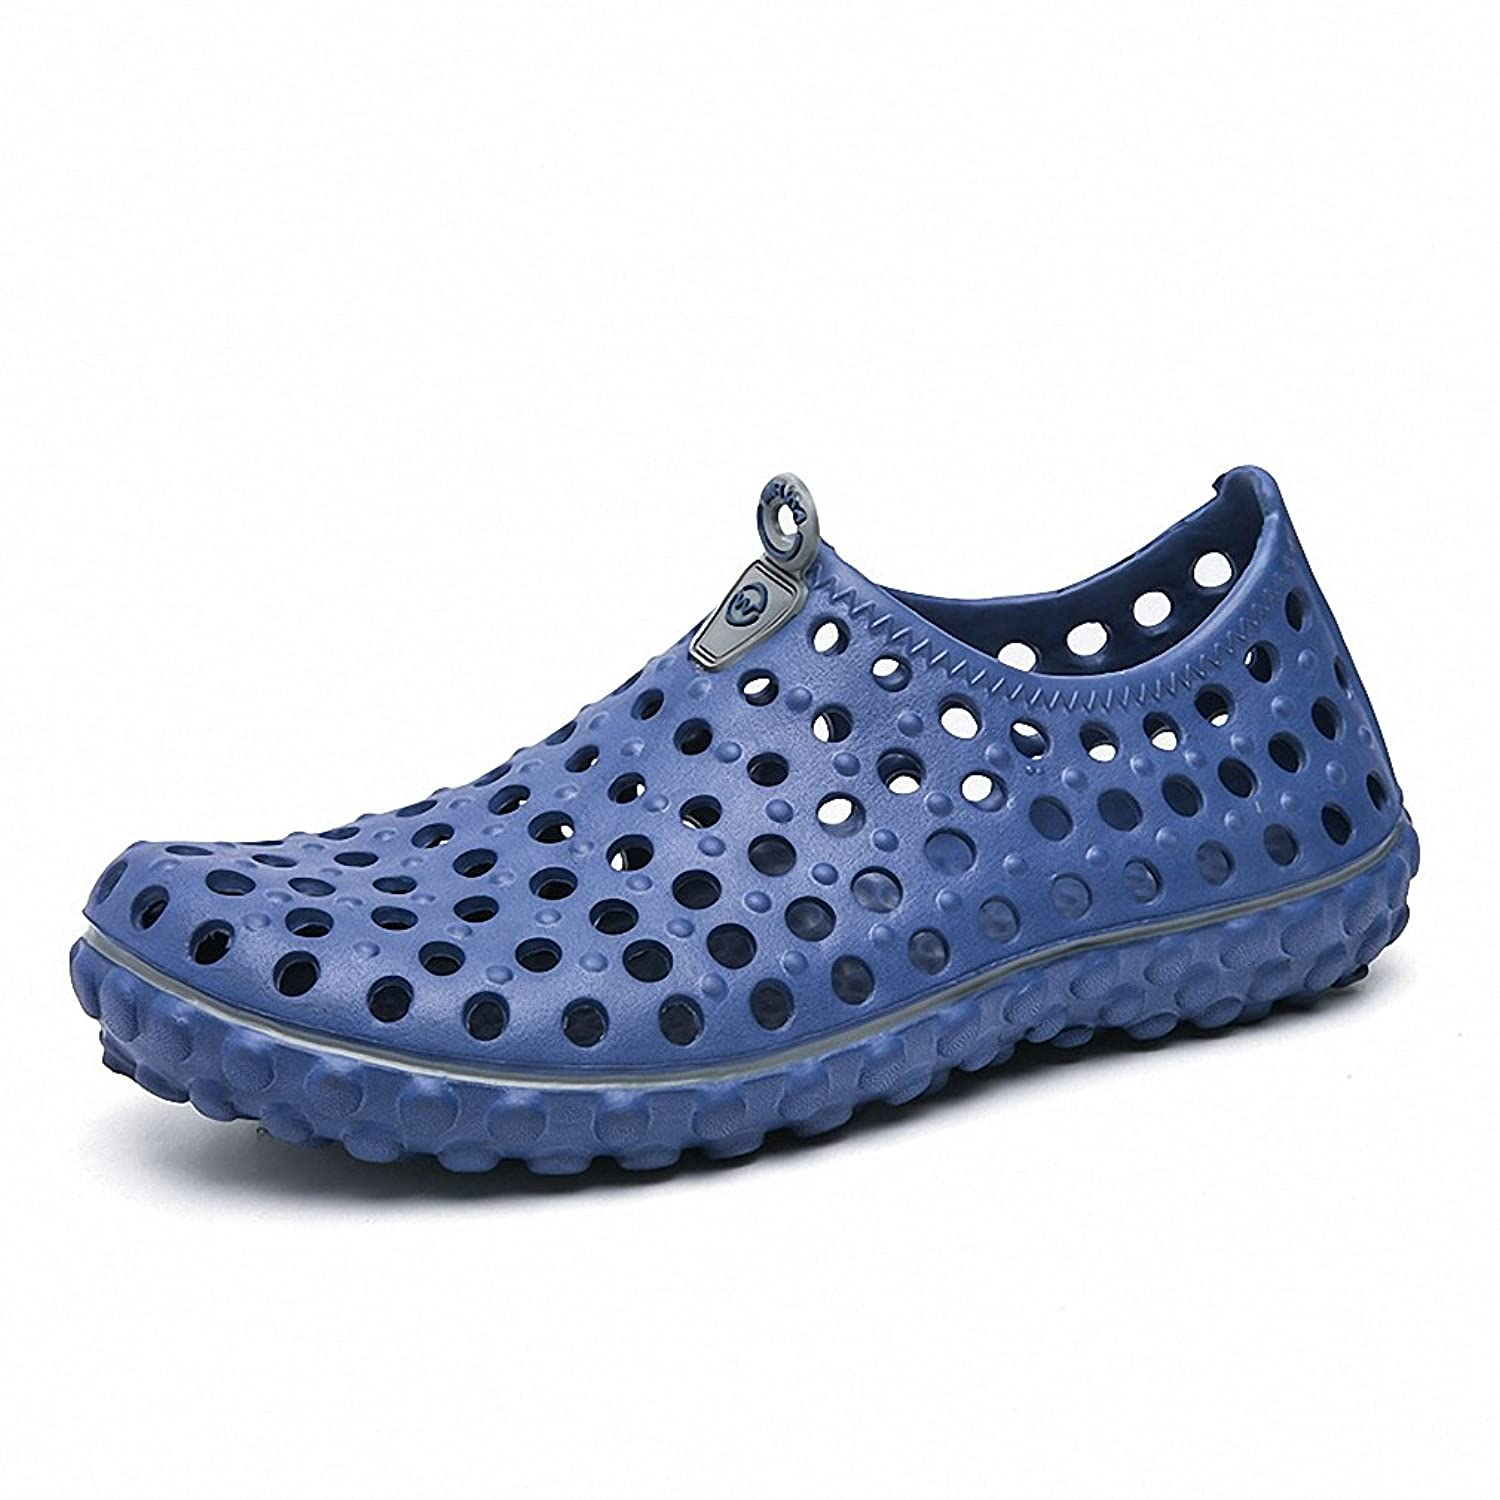 Amazon.com | Summer Beach Sandals Men Outdoor Garden Shoes Casual Unisex EVA Slippers Men Water Shoes Beach Flip Flops Croc Clogs | Mules & Clogs